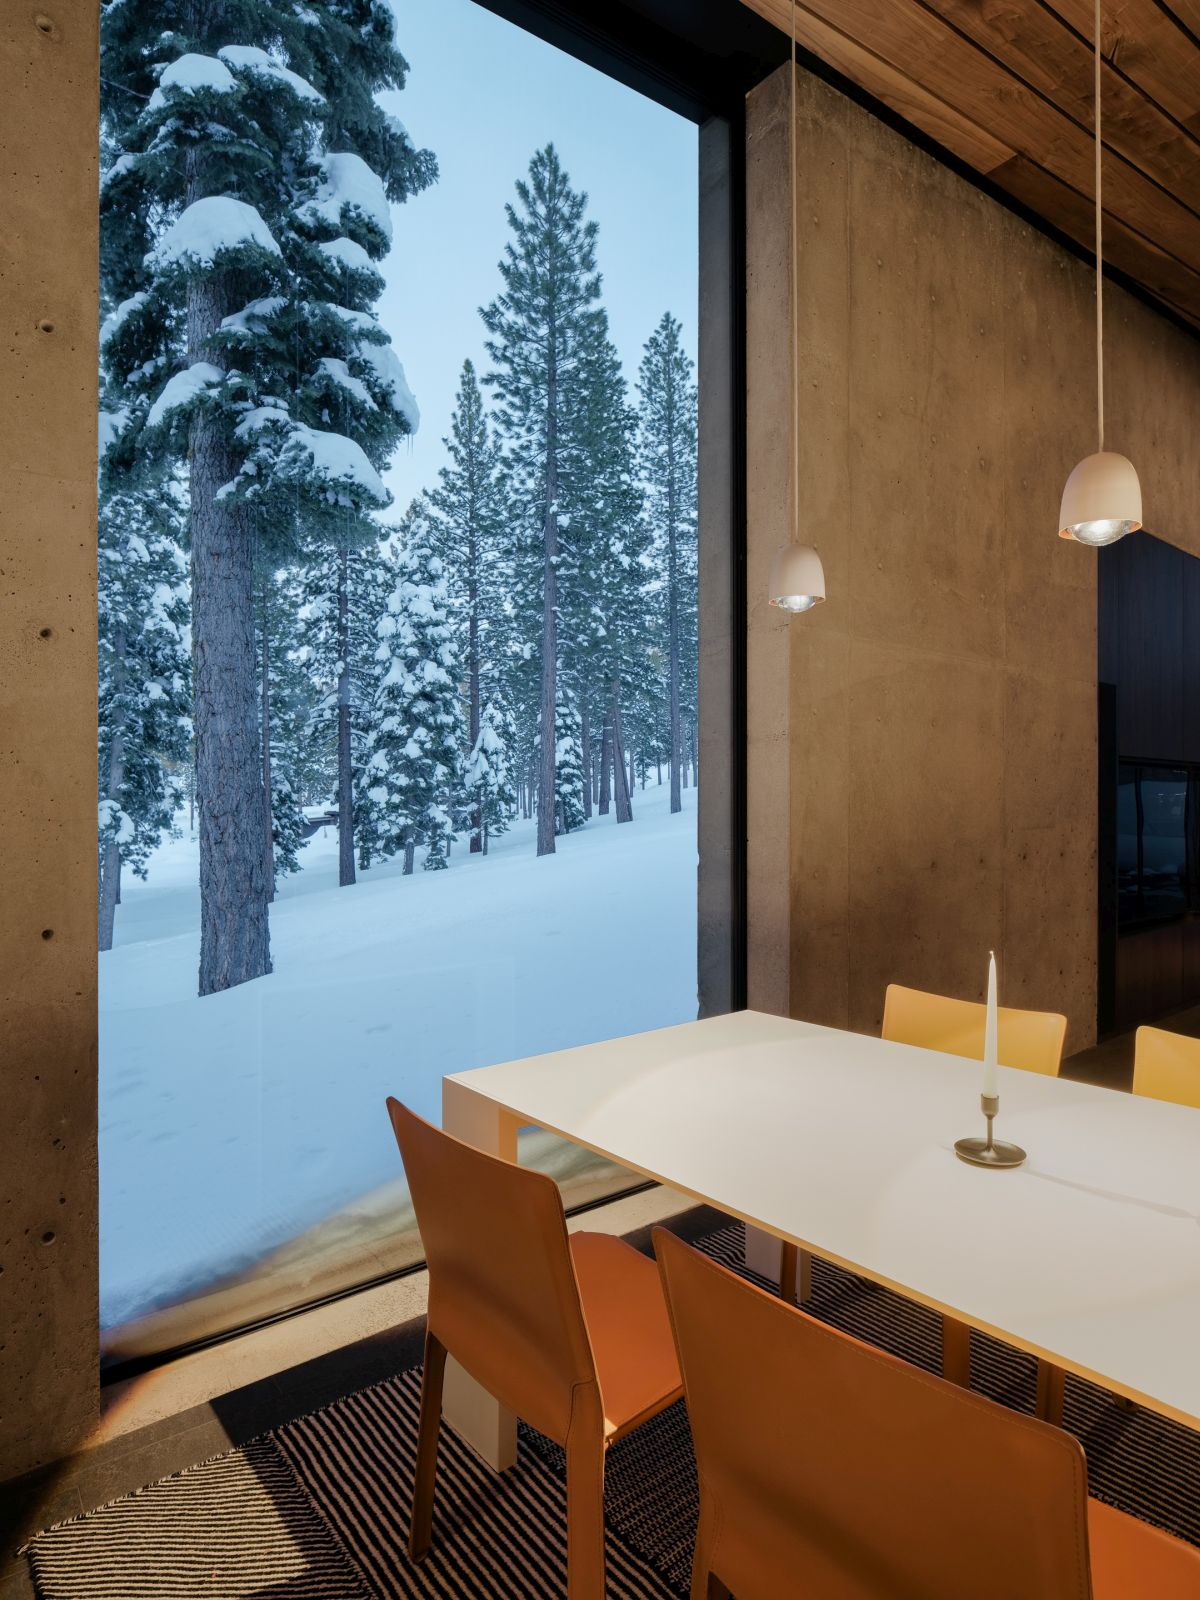 The dining area enjoys a tranquil and relaxing view of the nearby trees